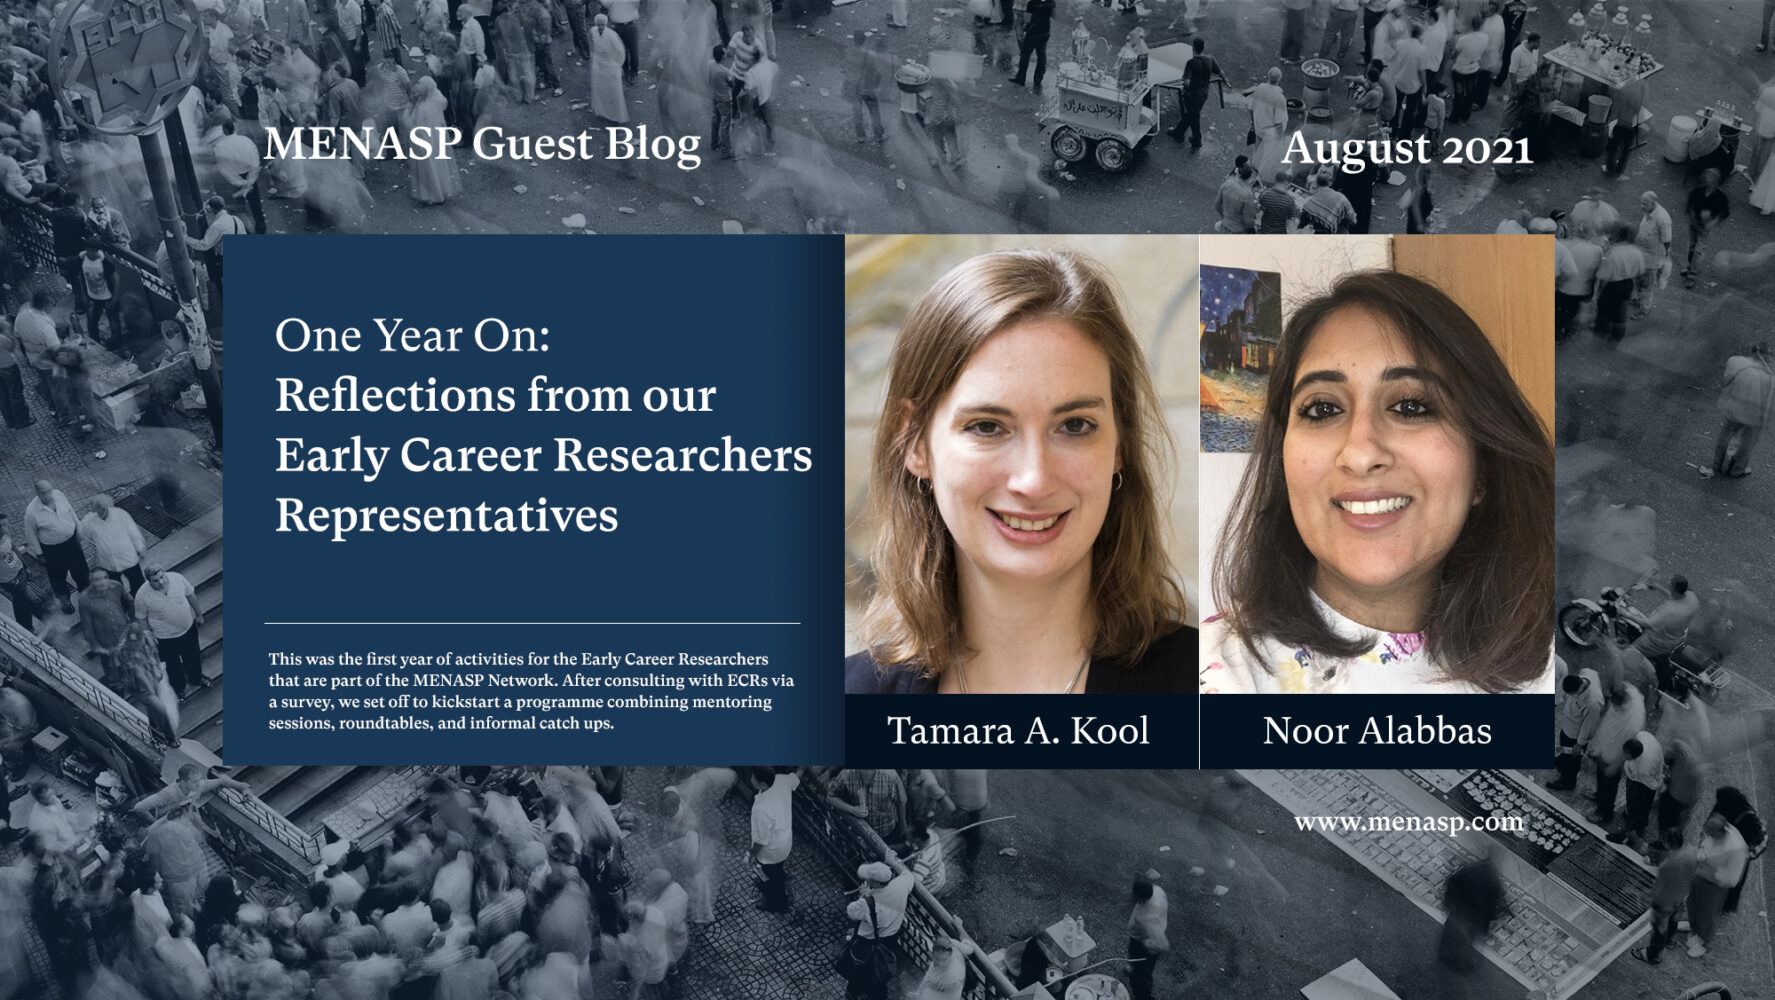 One Year On: Reflections from our Early Career Researchers Representatives